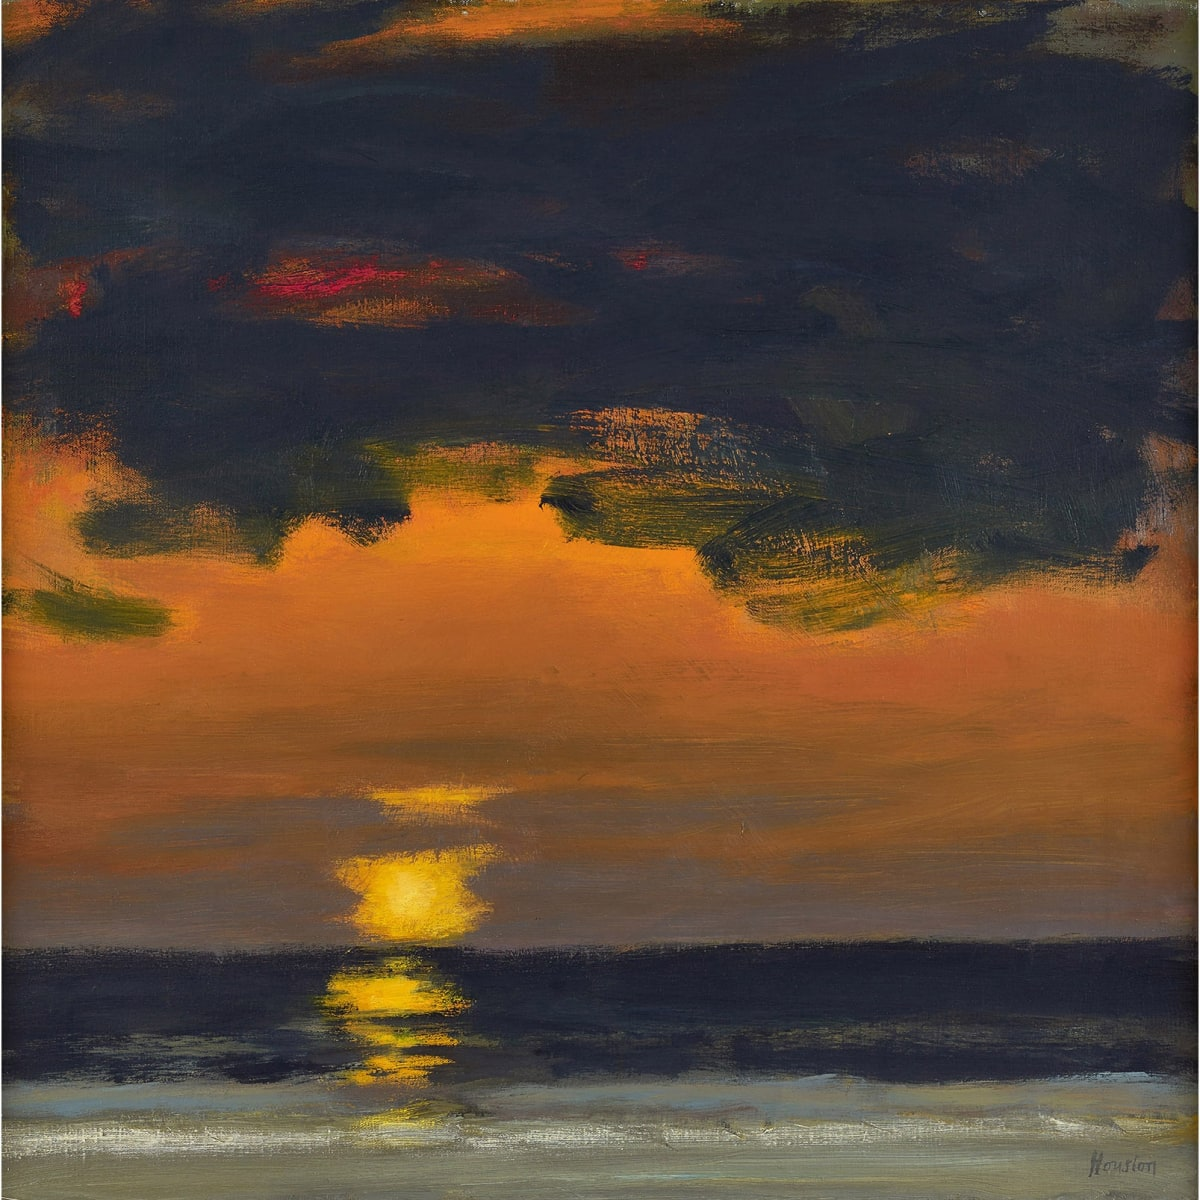 John Houston Sunset over coast, 1980-81 signed; signed, titled and dated 1980-81 on stretcher verso oil on canvas 20 x 20 inches